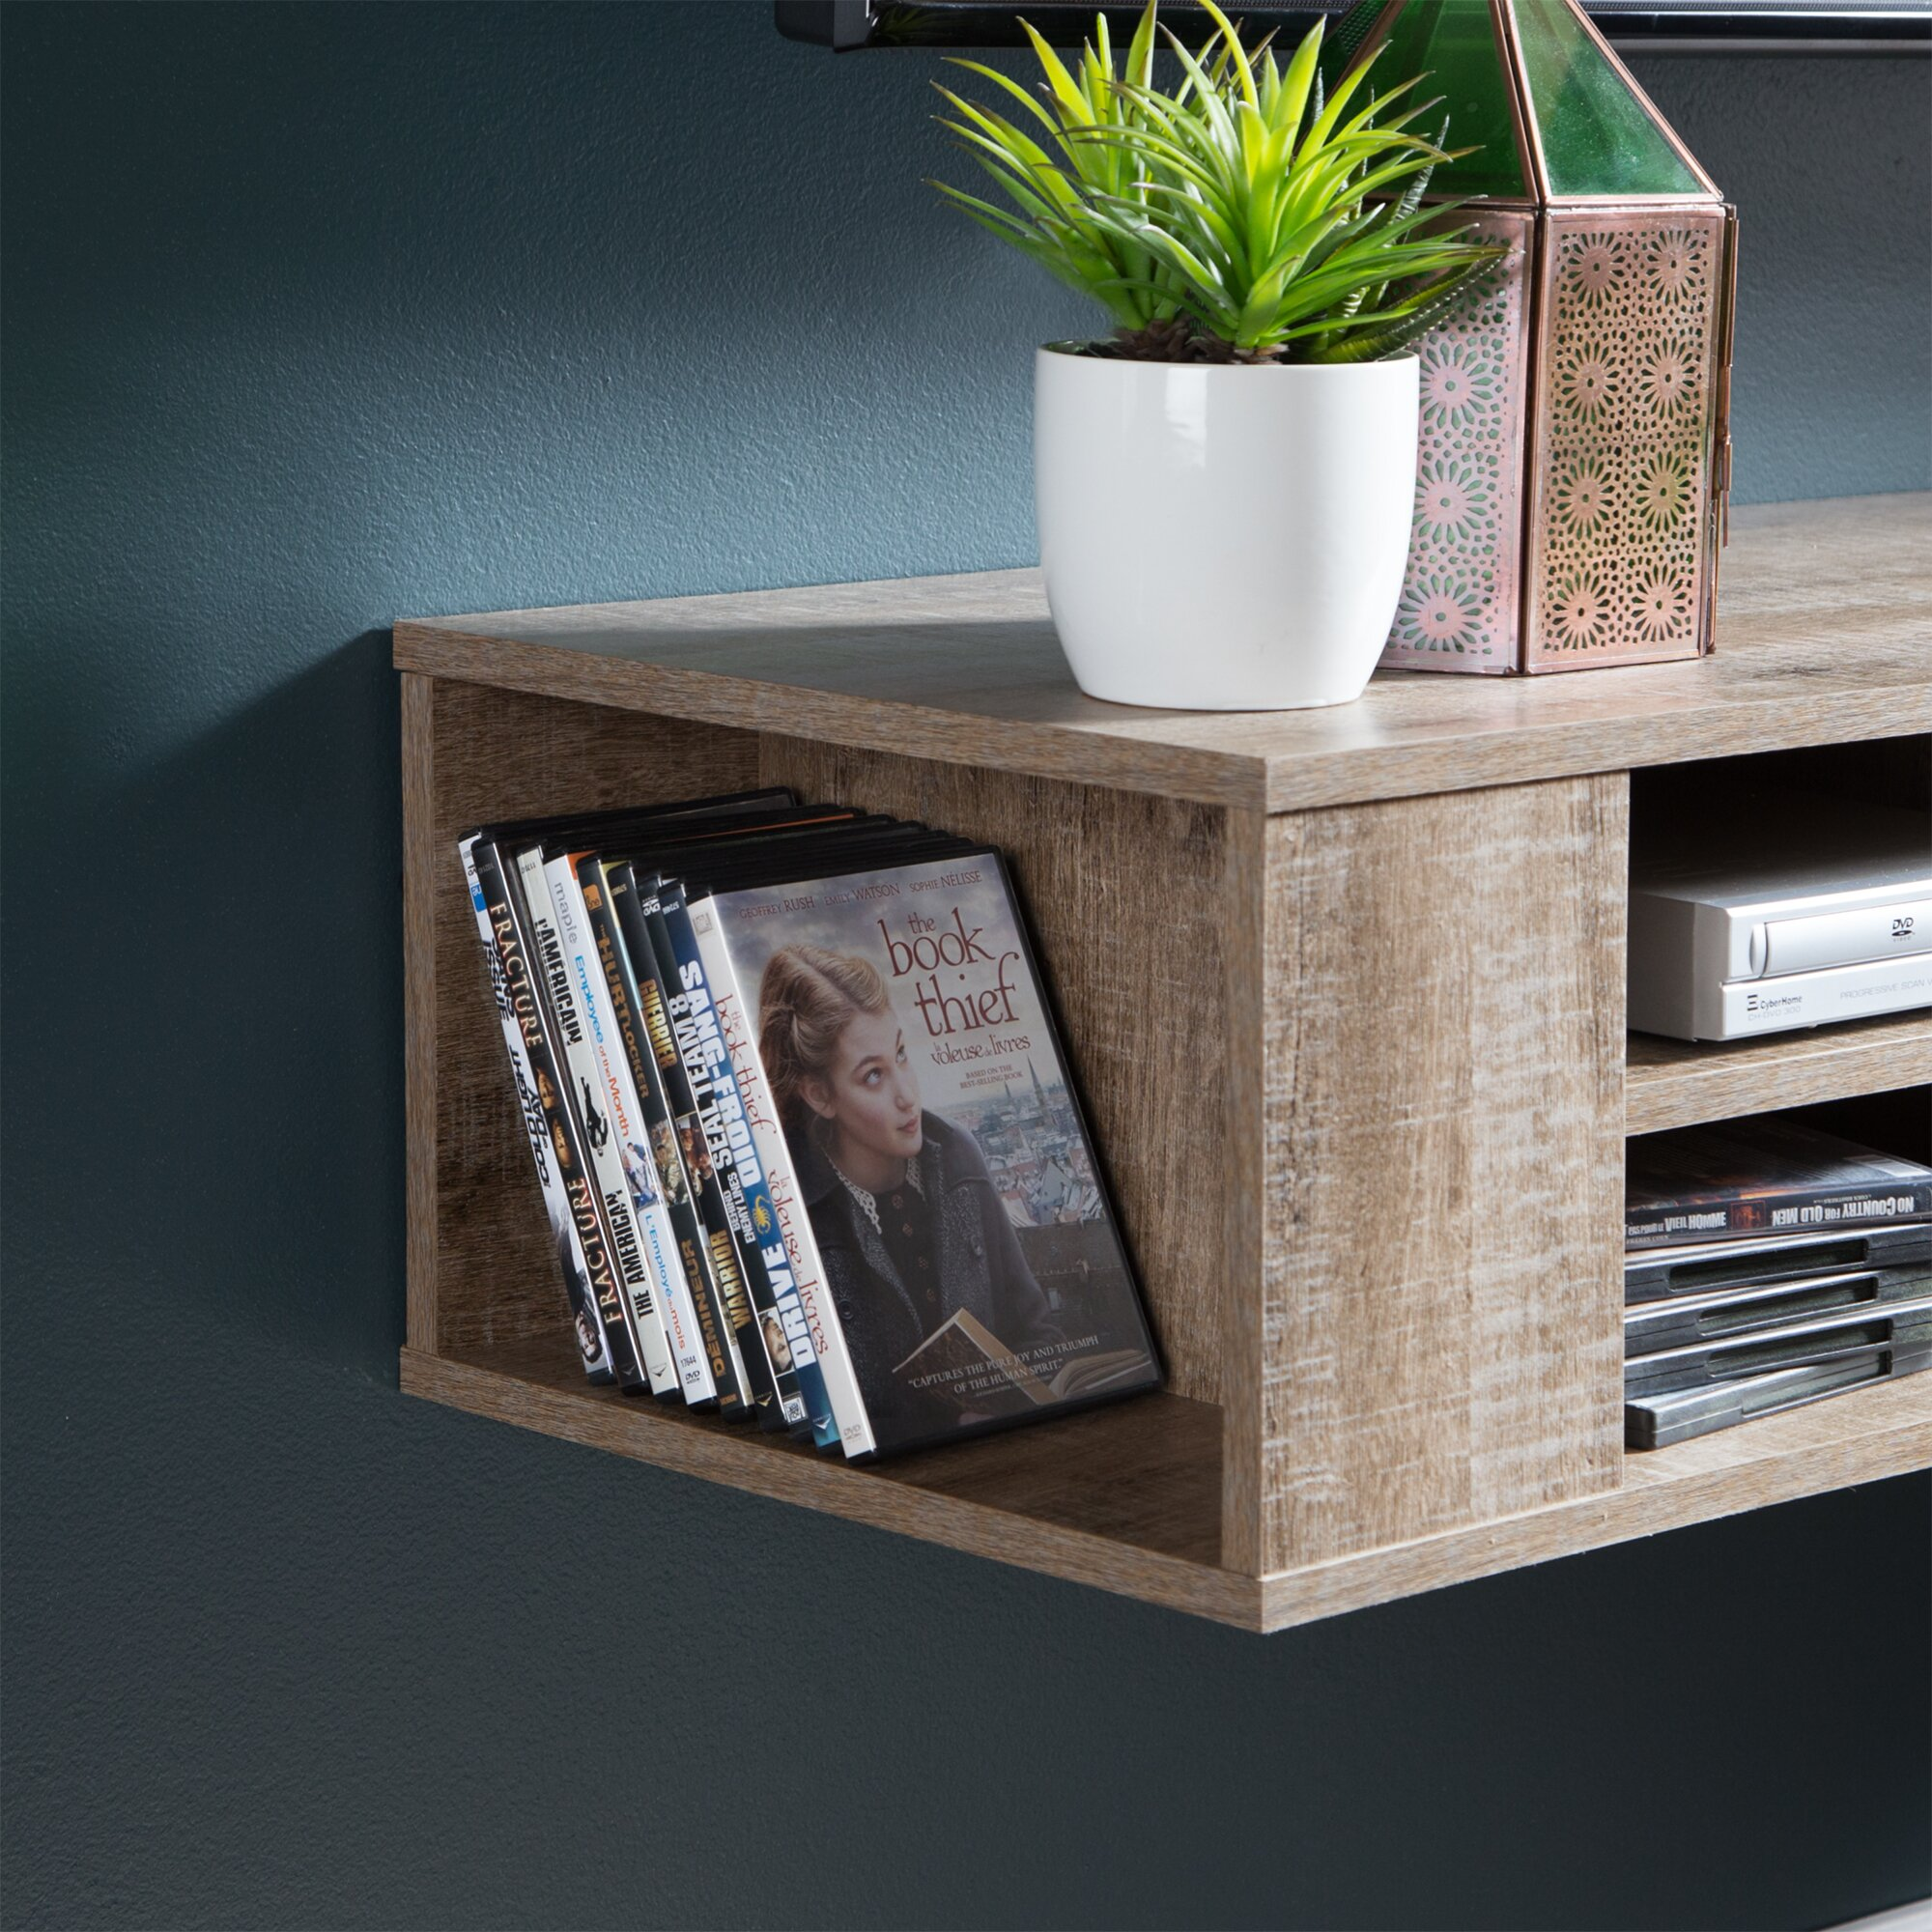 Marvelous Venerable The Chic South Shore City Life Tv Stand Play Idea